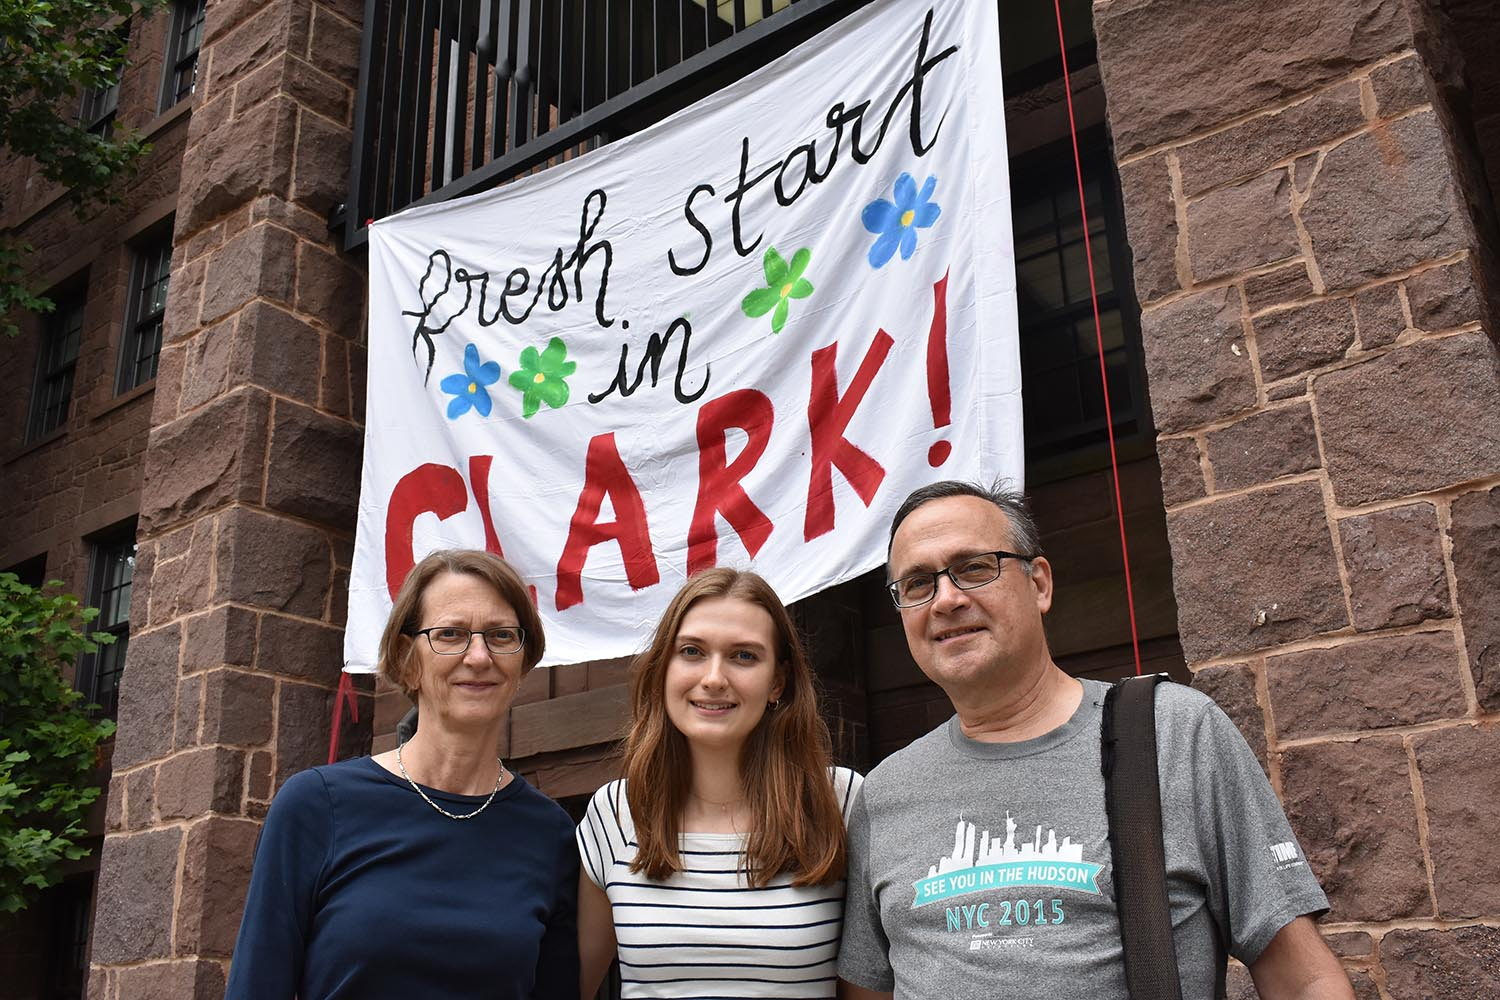 0134 Hannah Gonsher photographed with parents in front of Clark Hall sign (Cynthia might have more details)